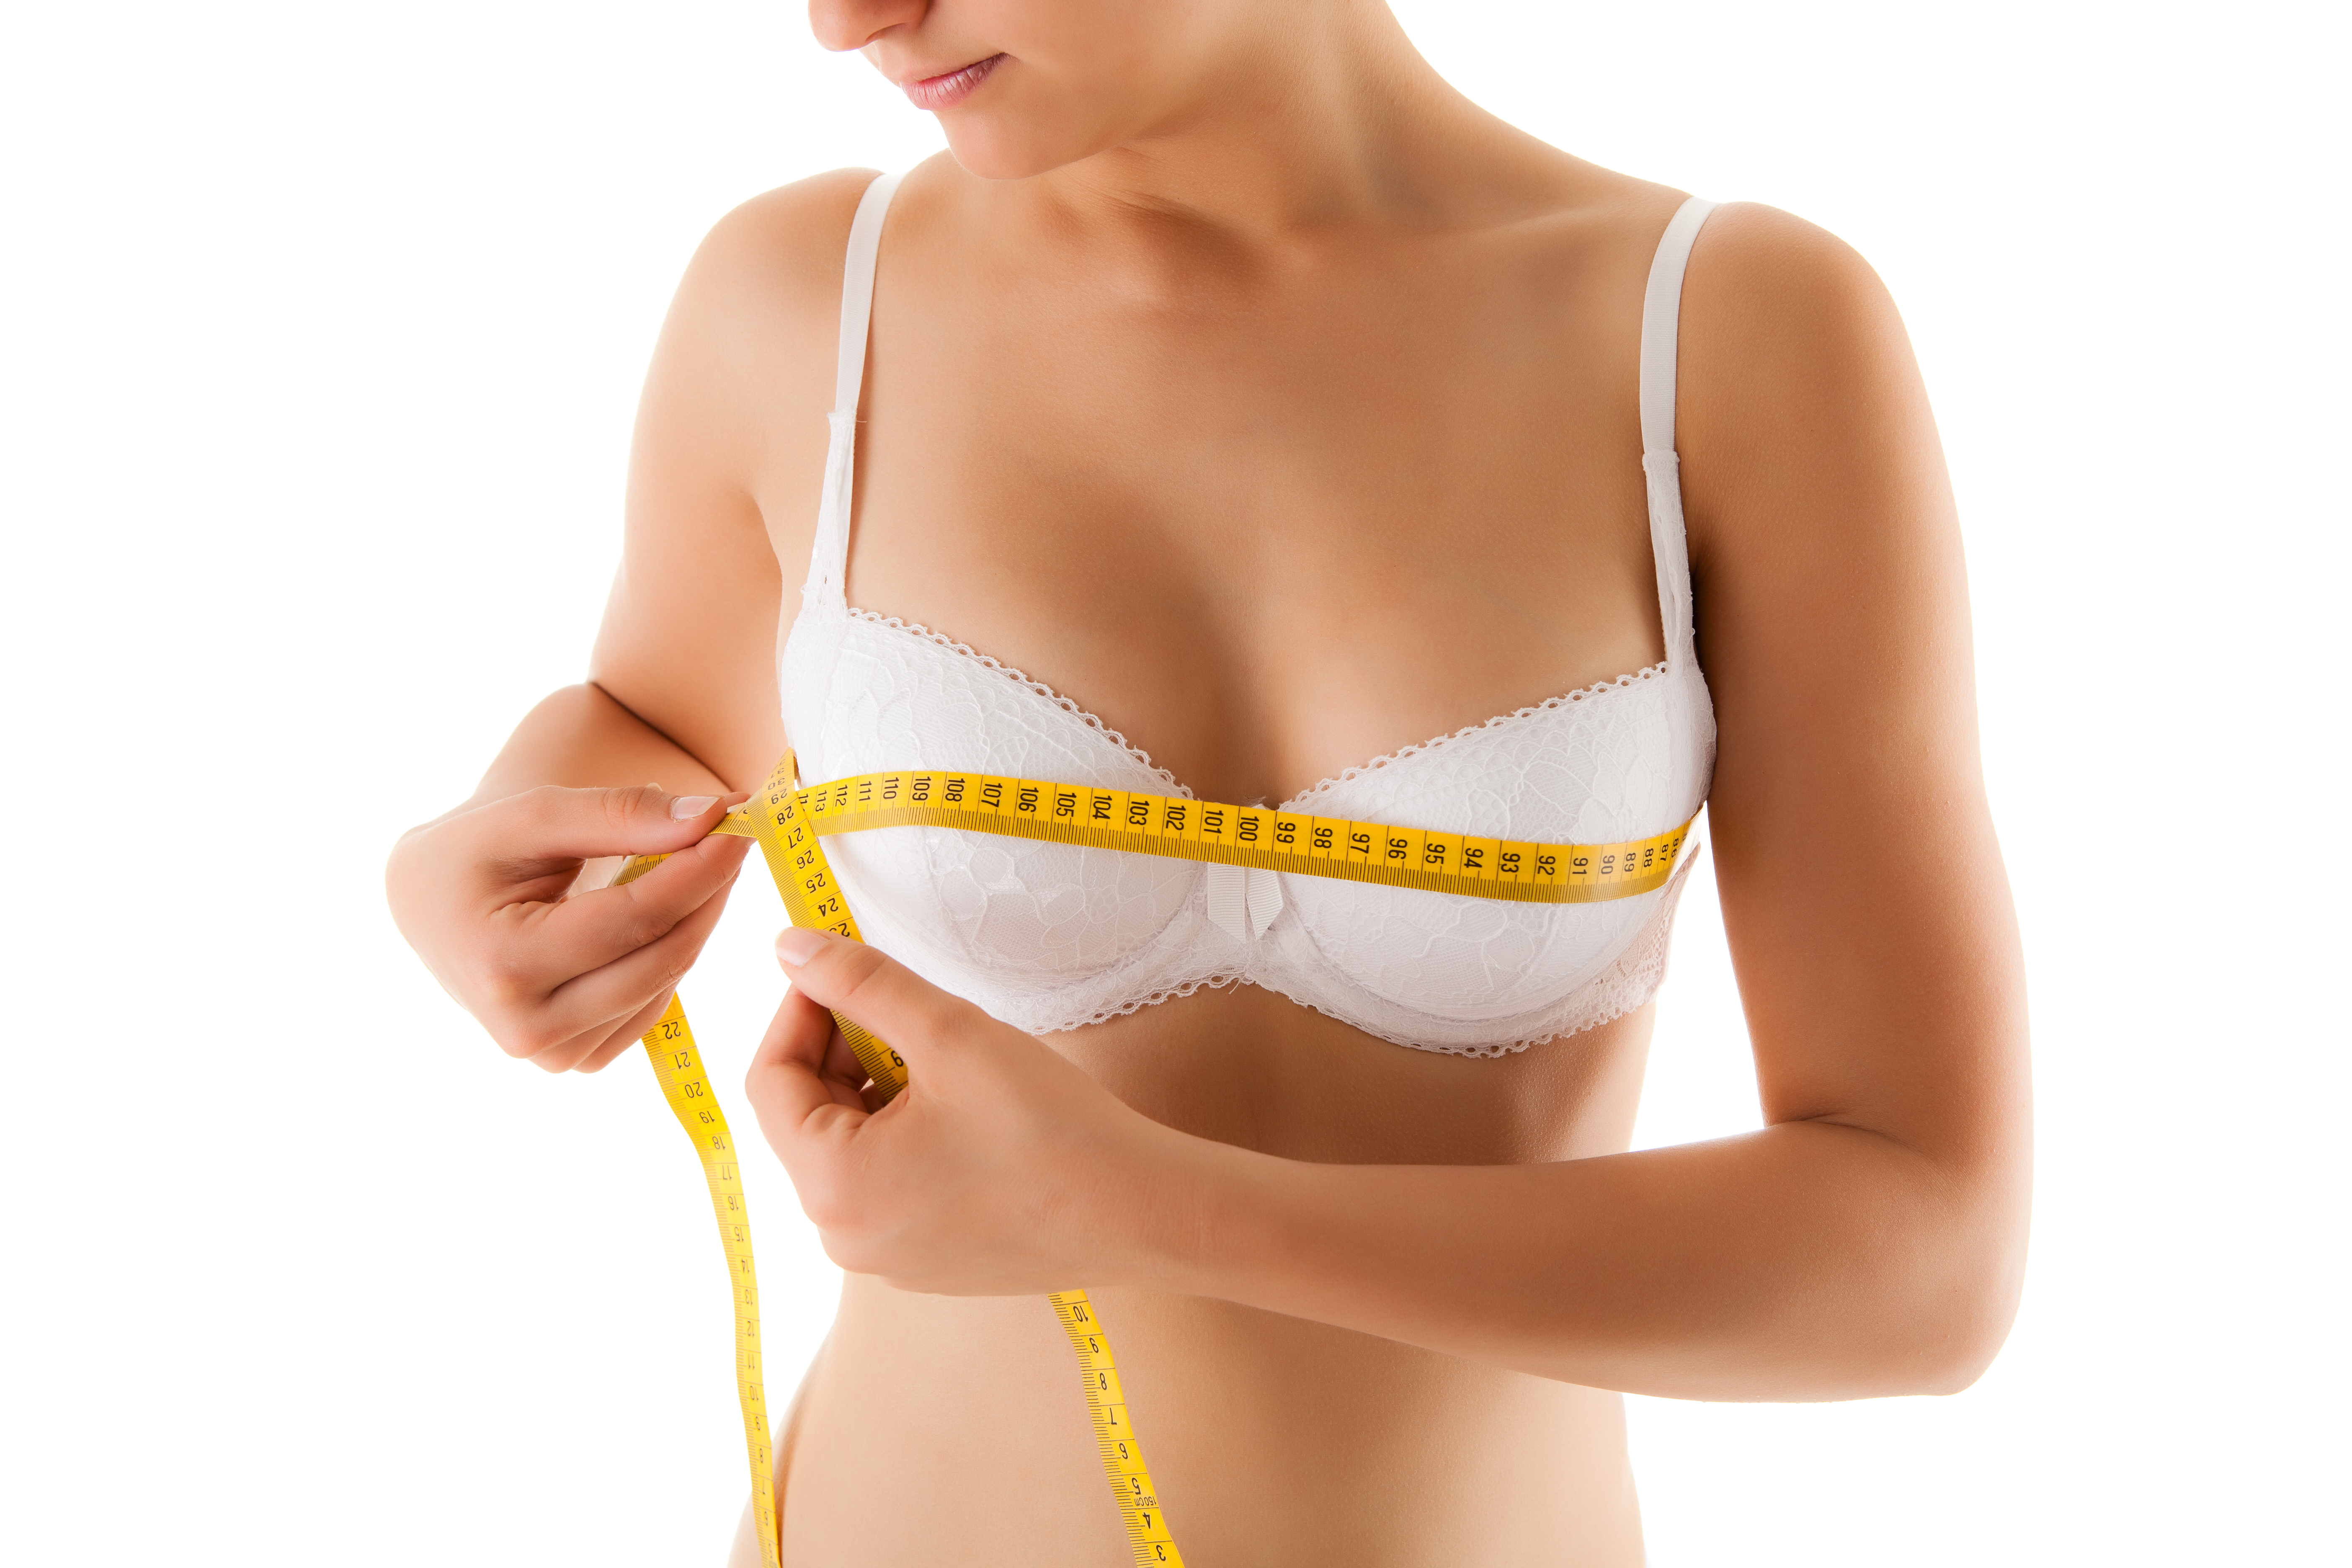 Breast Augmentation & Breast Lift Without Implants